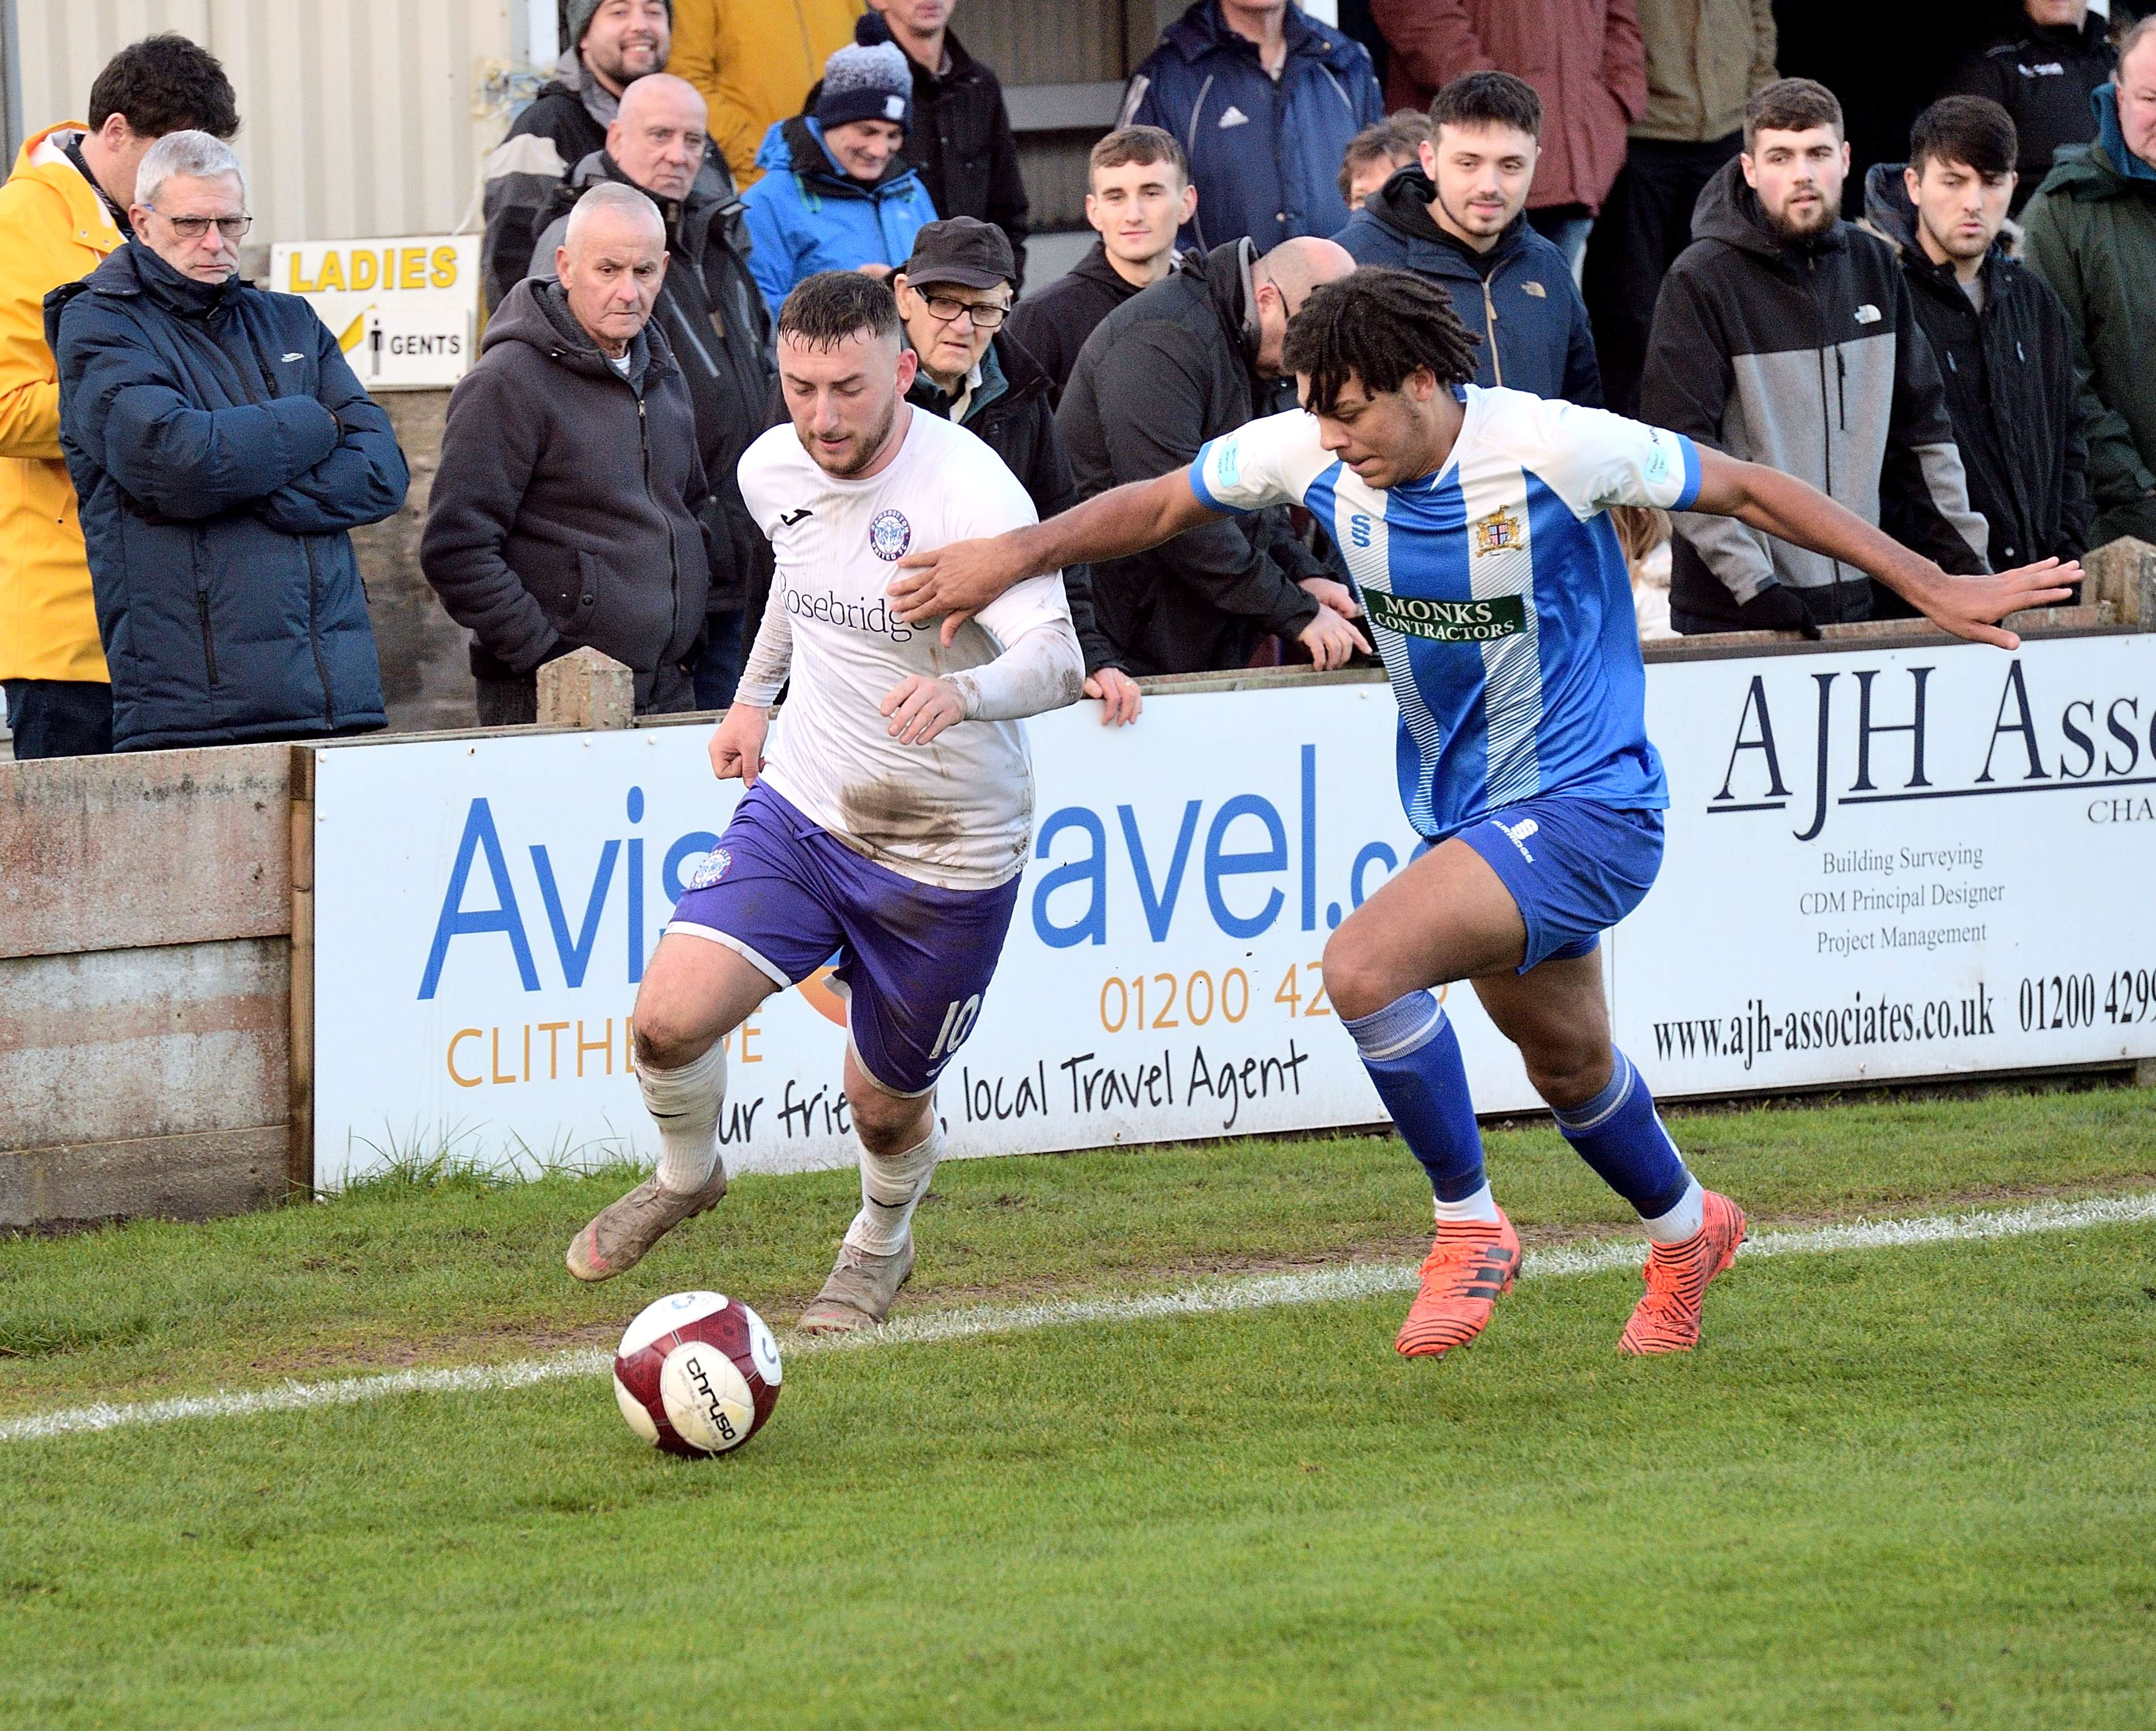 Clitheroe 2 Rams 1 - Match Action